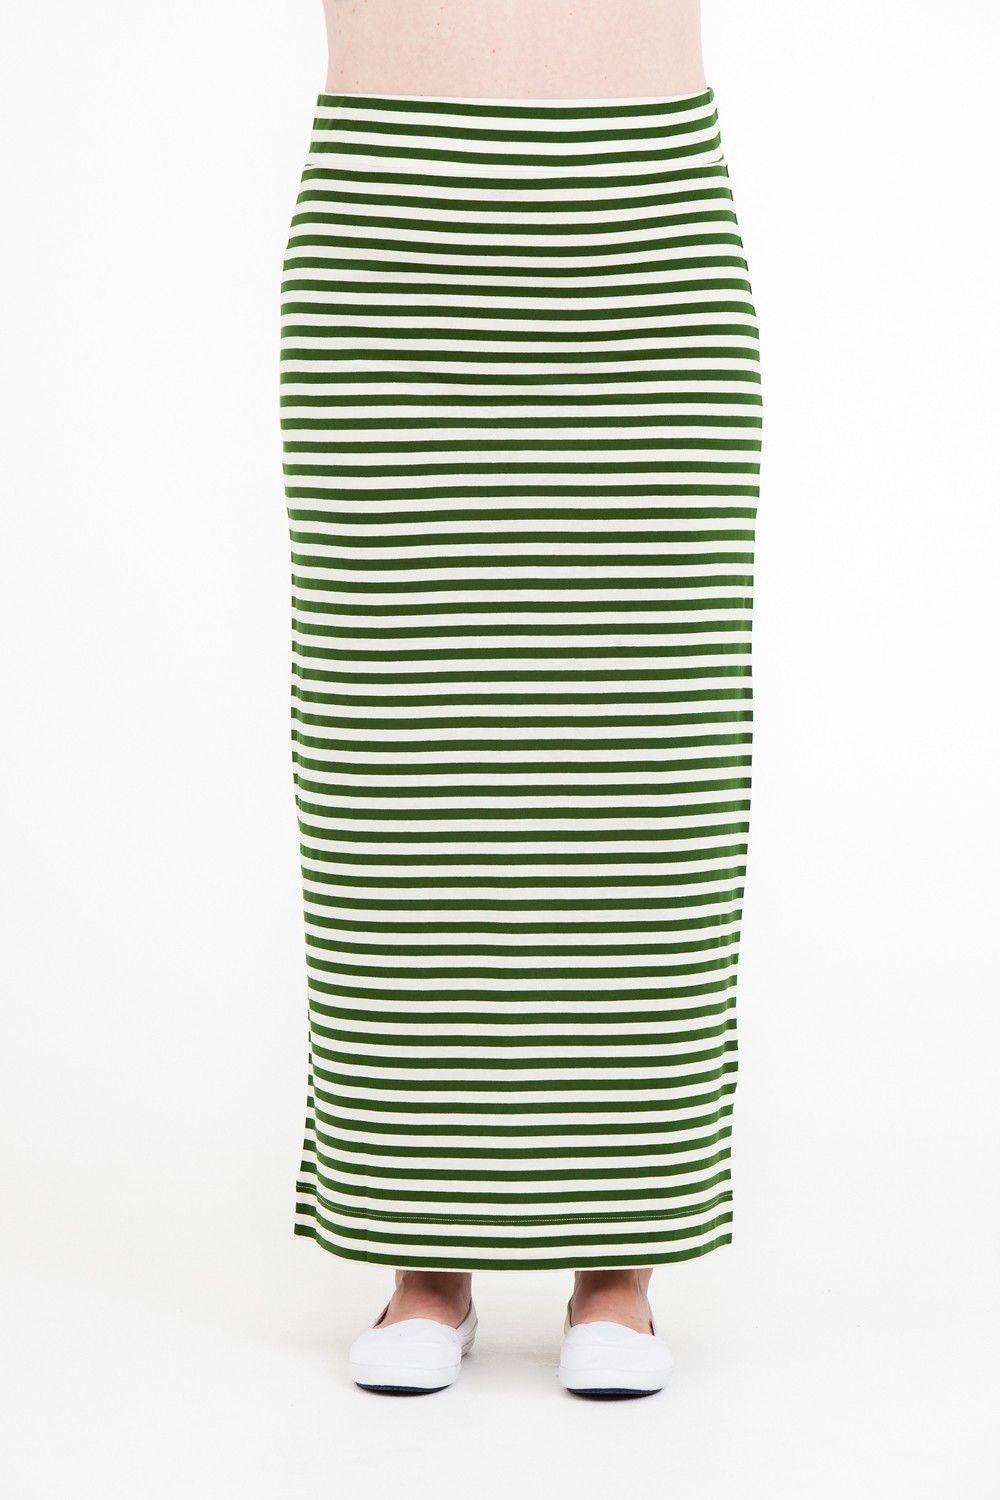 b2eb4414f3 AliceDot. international - Paris skirt long green/white stripe Vit, Women's  Skirts,